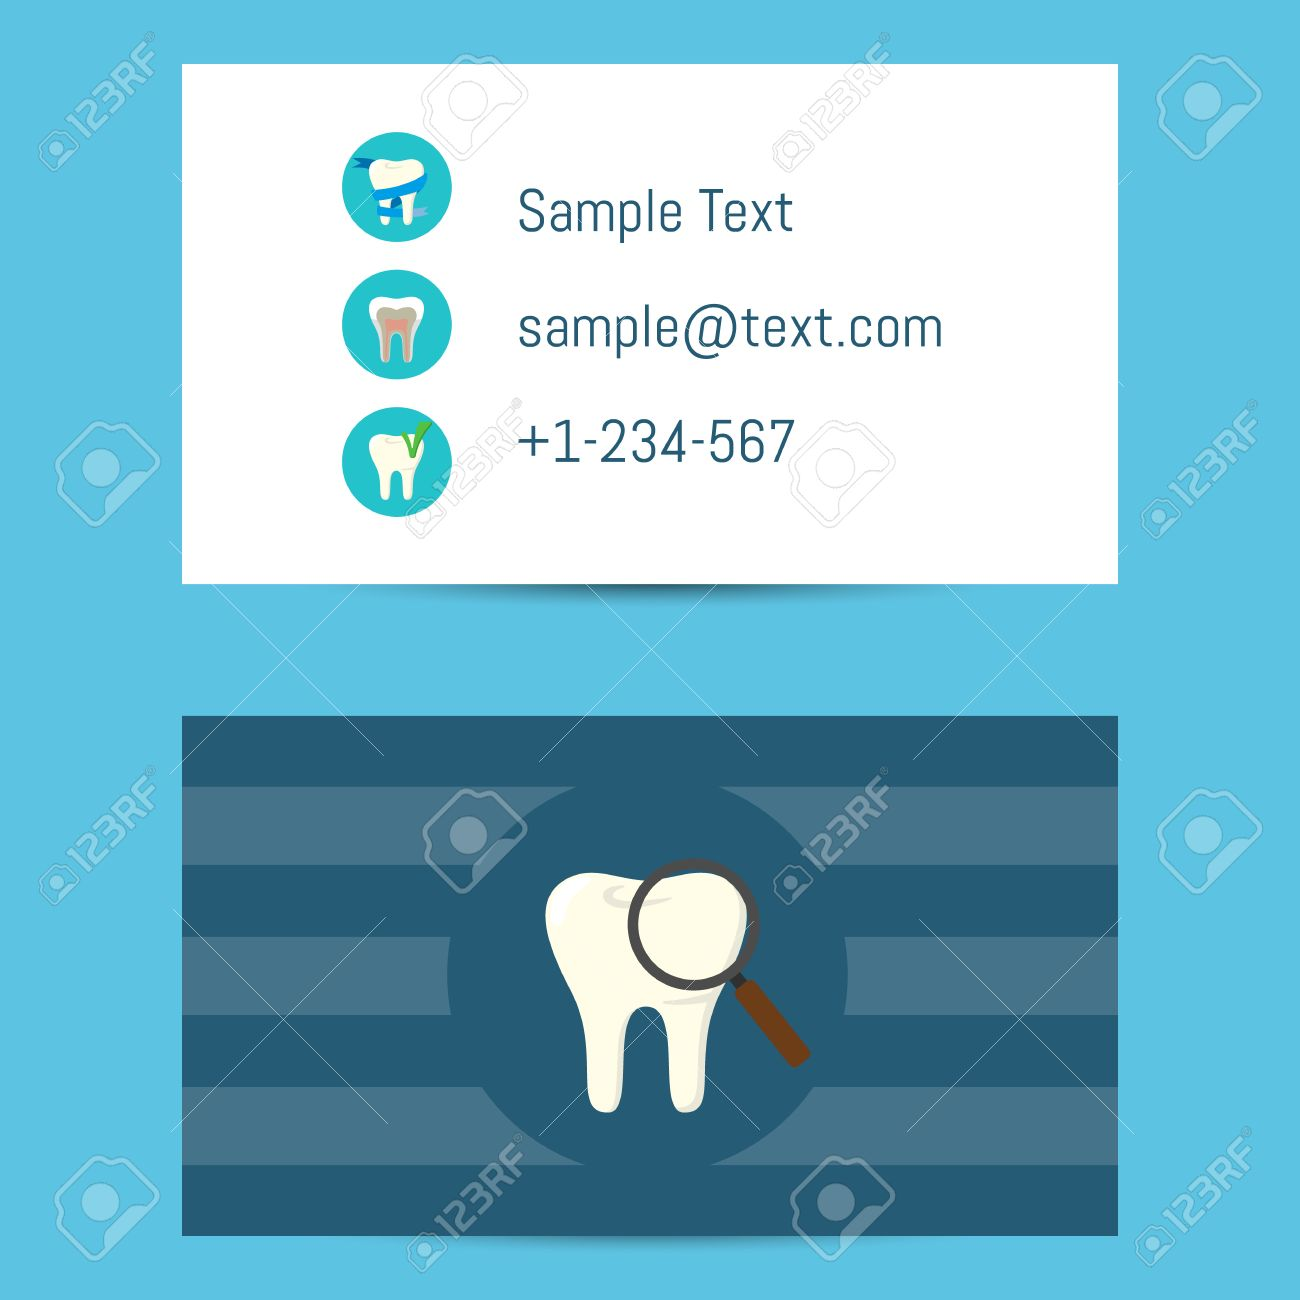 Professional business card template for dentists with tooth symbol professional business card template for dentists with tooth symbol with magnifier on blue background illustration accmission Images